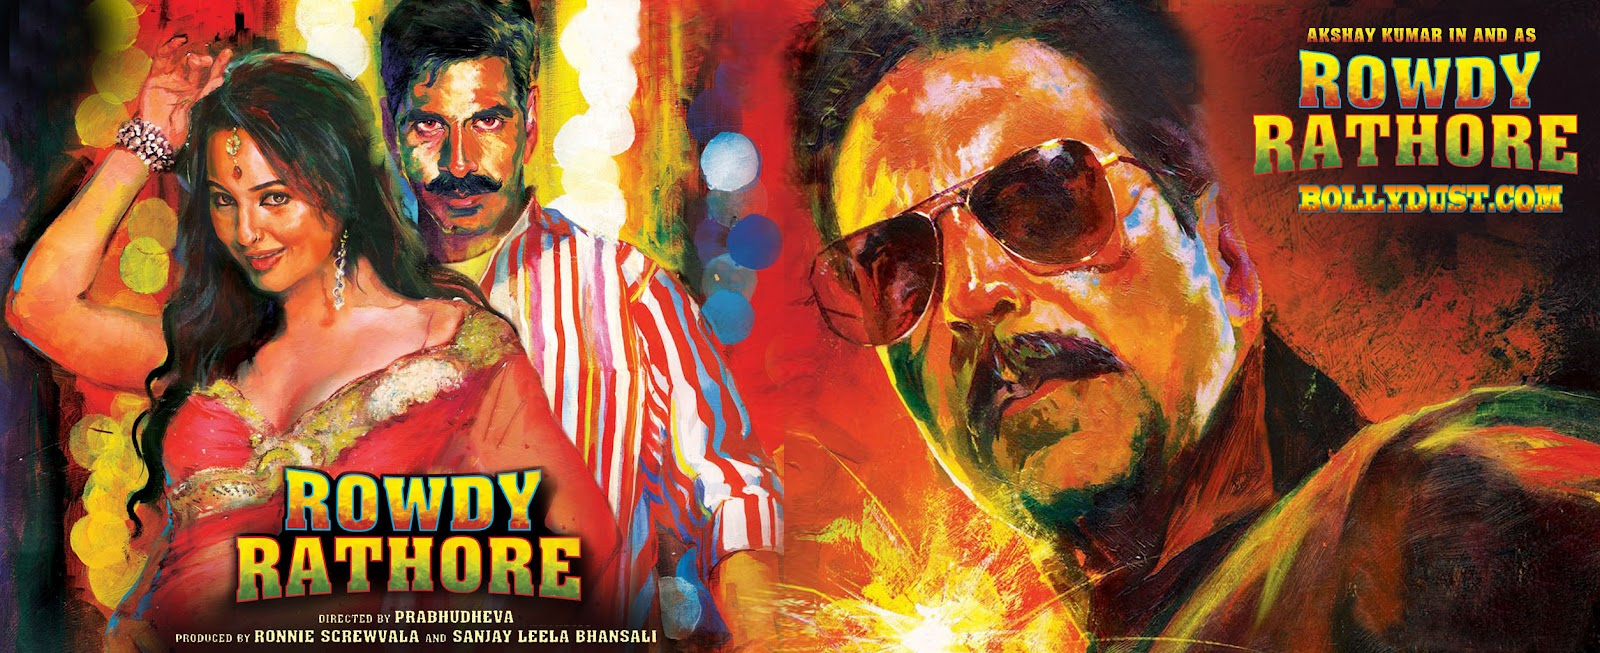 Rowdy Rathore - Topic - YouTube